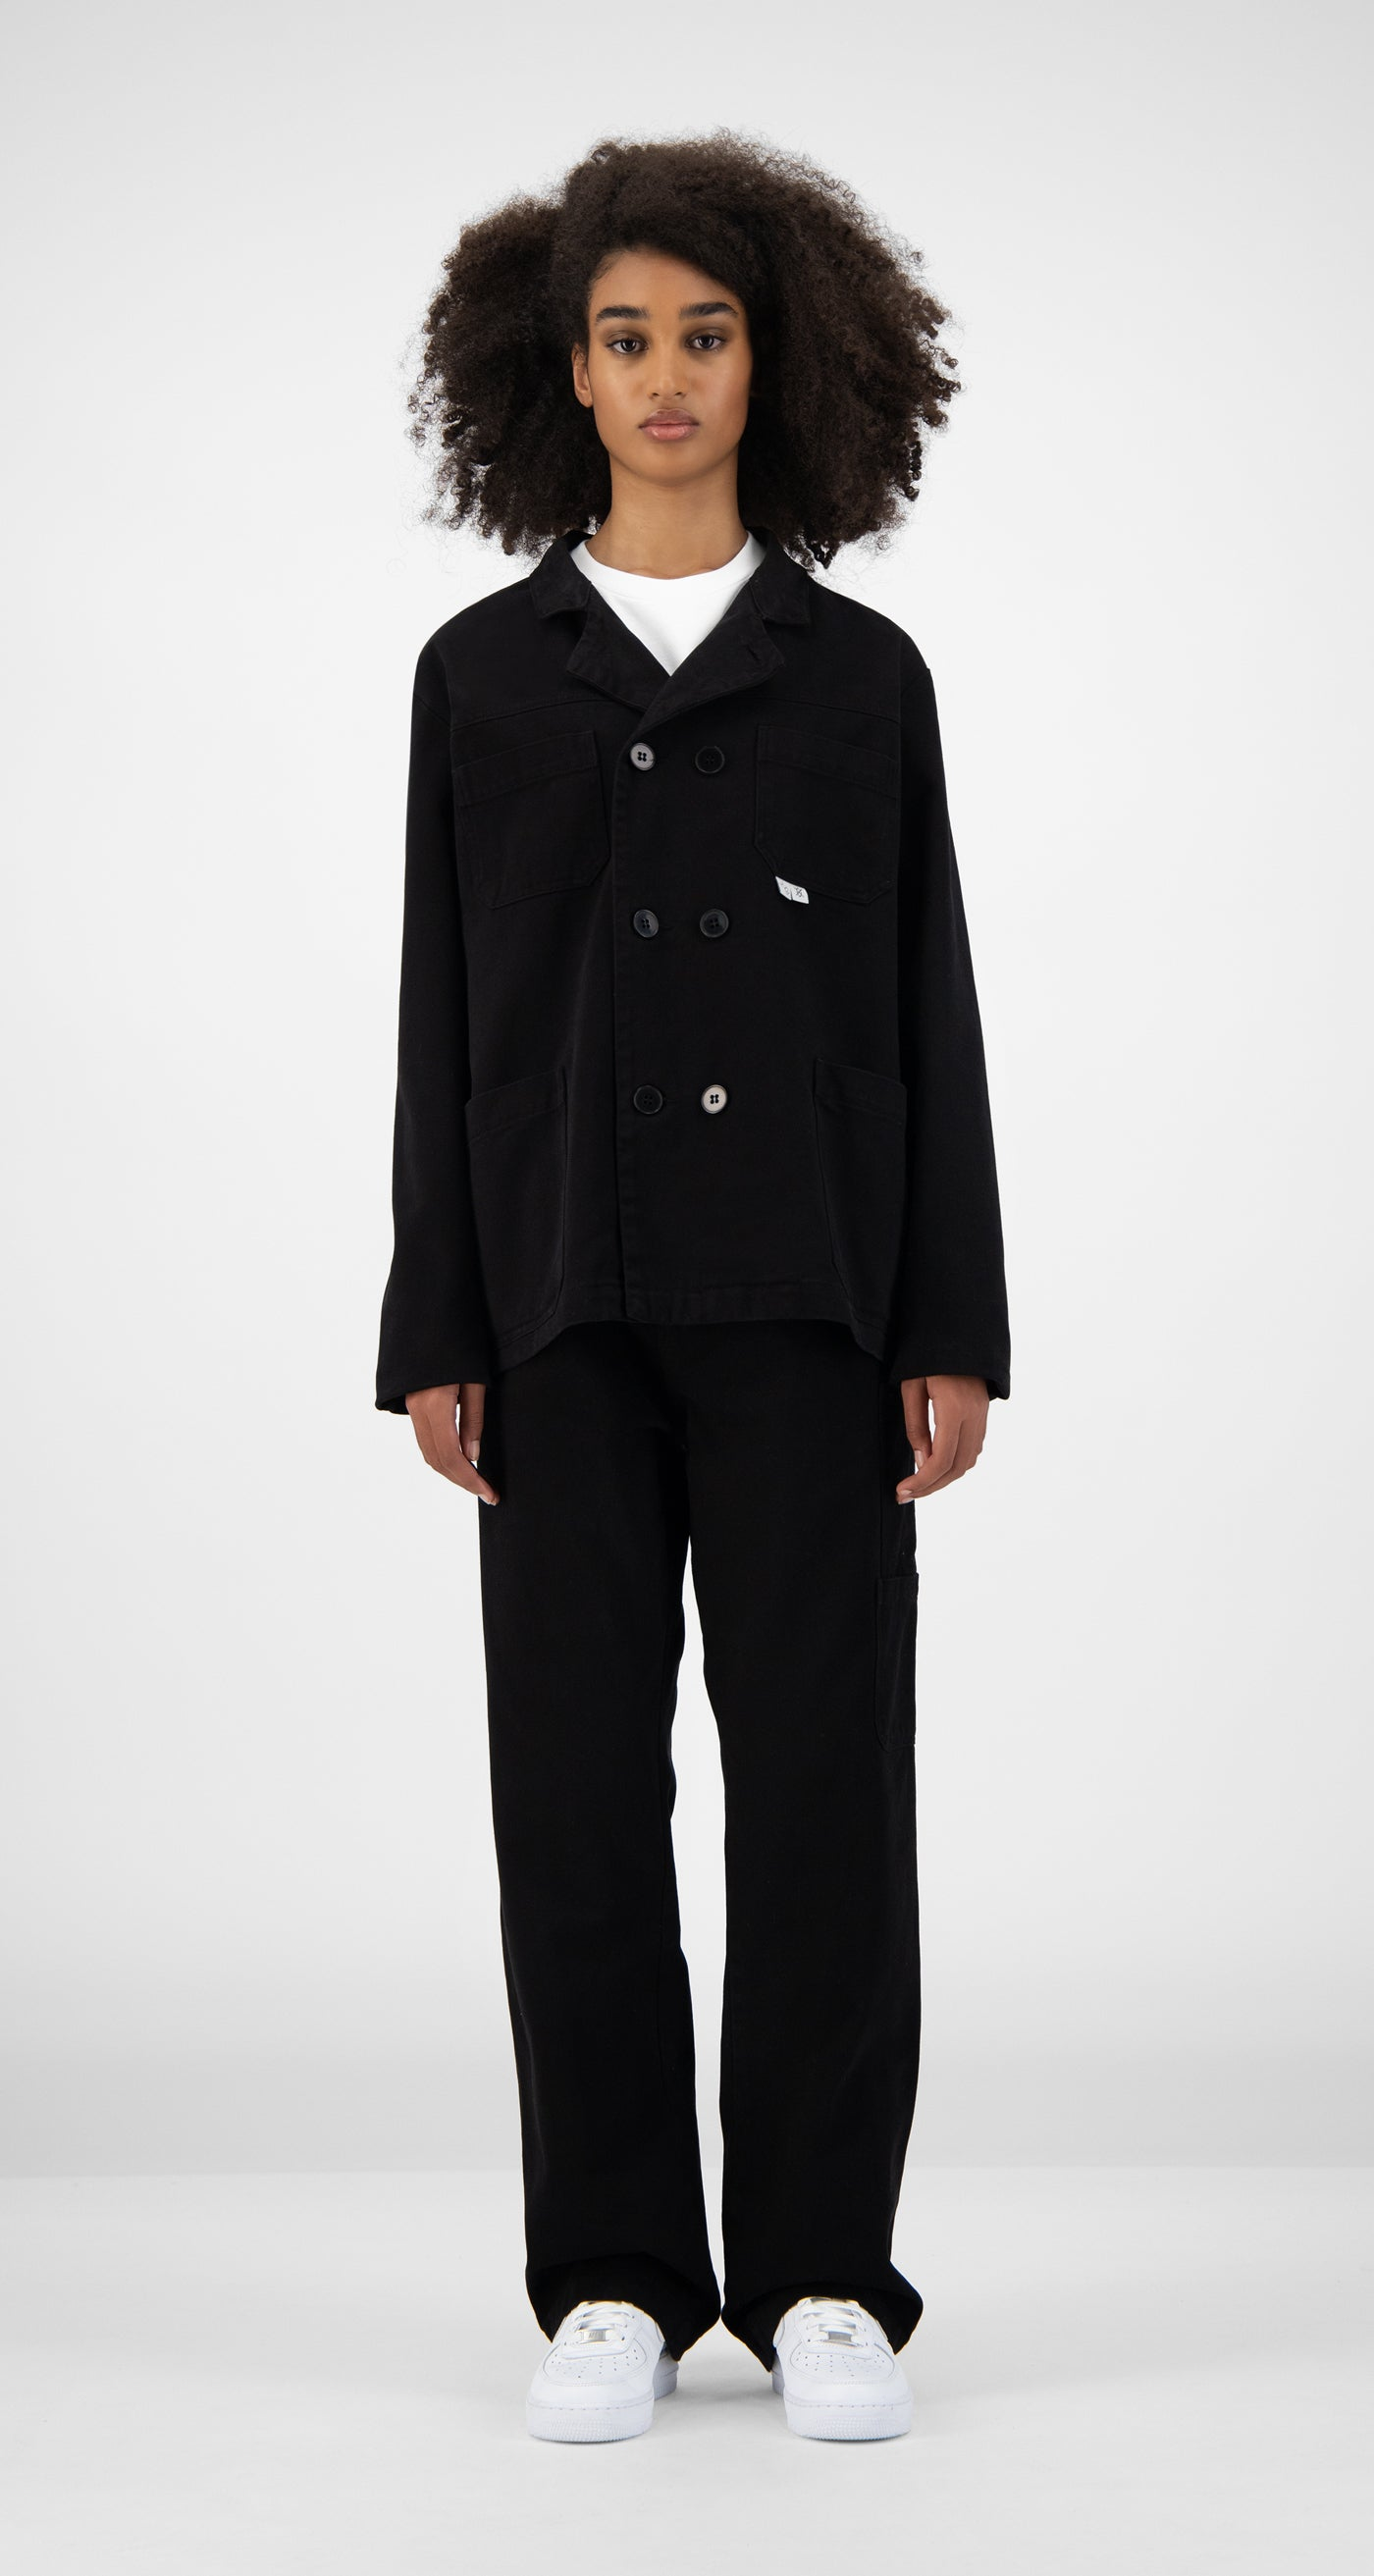 Daily Paper x Bonne Suits - Black Suit - Women Front